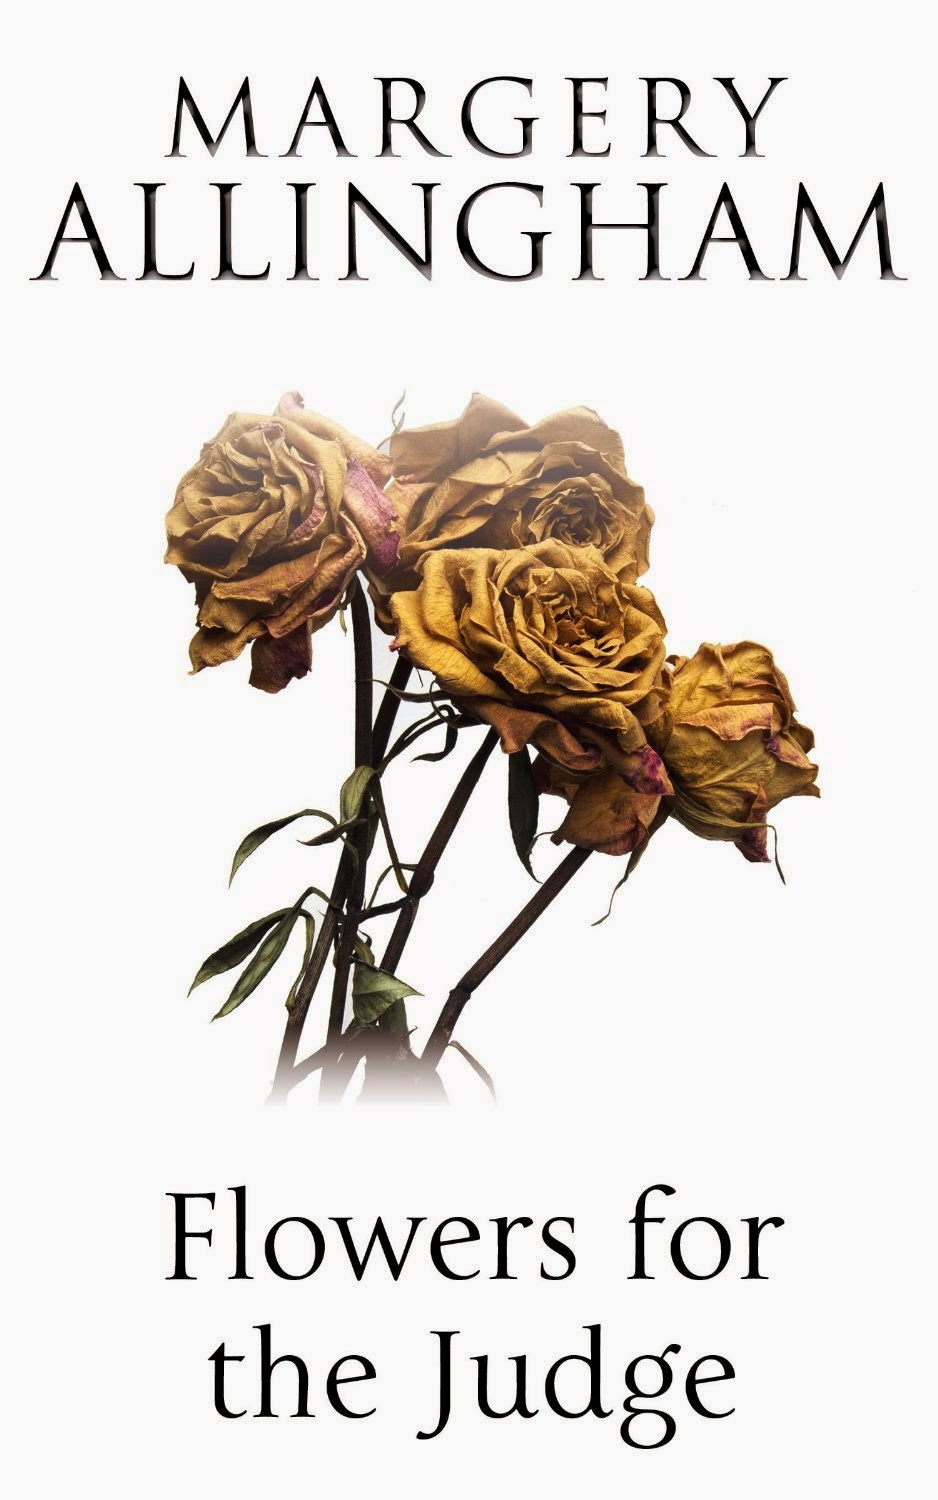 http://www.goodreads.com/book/show/22599342-flowers-for-the-judge